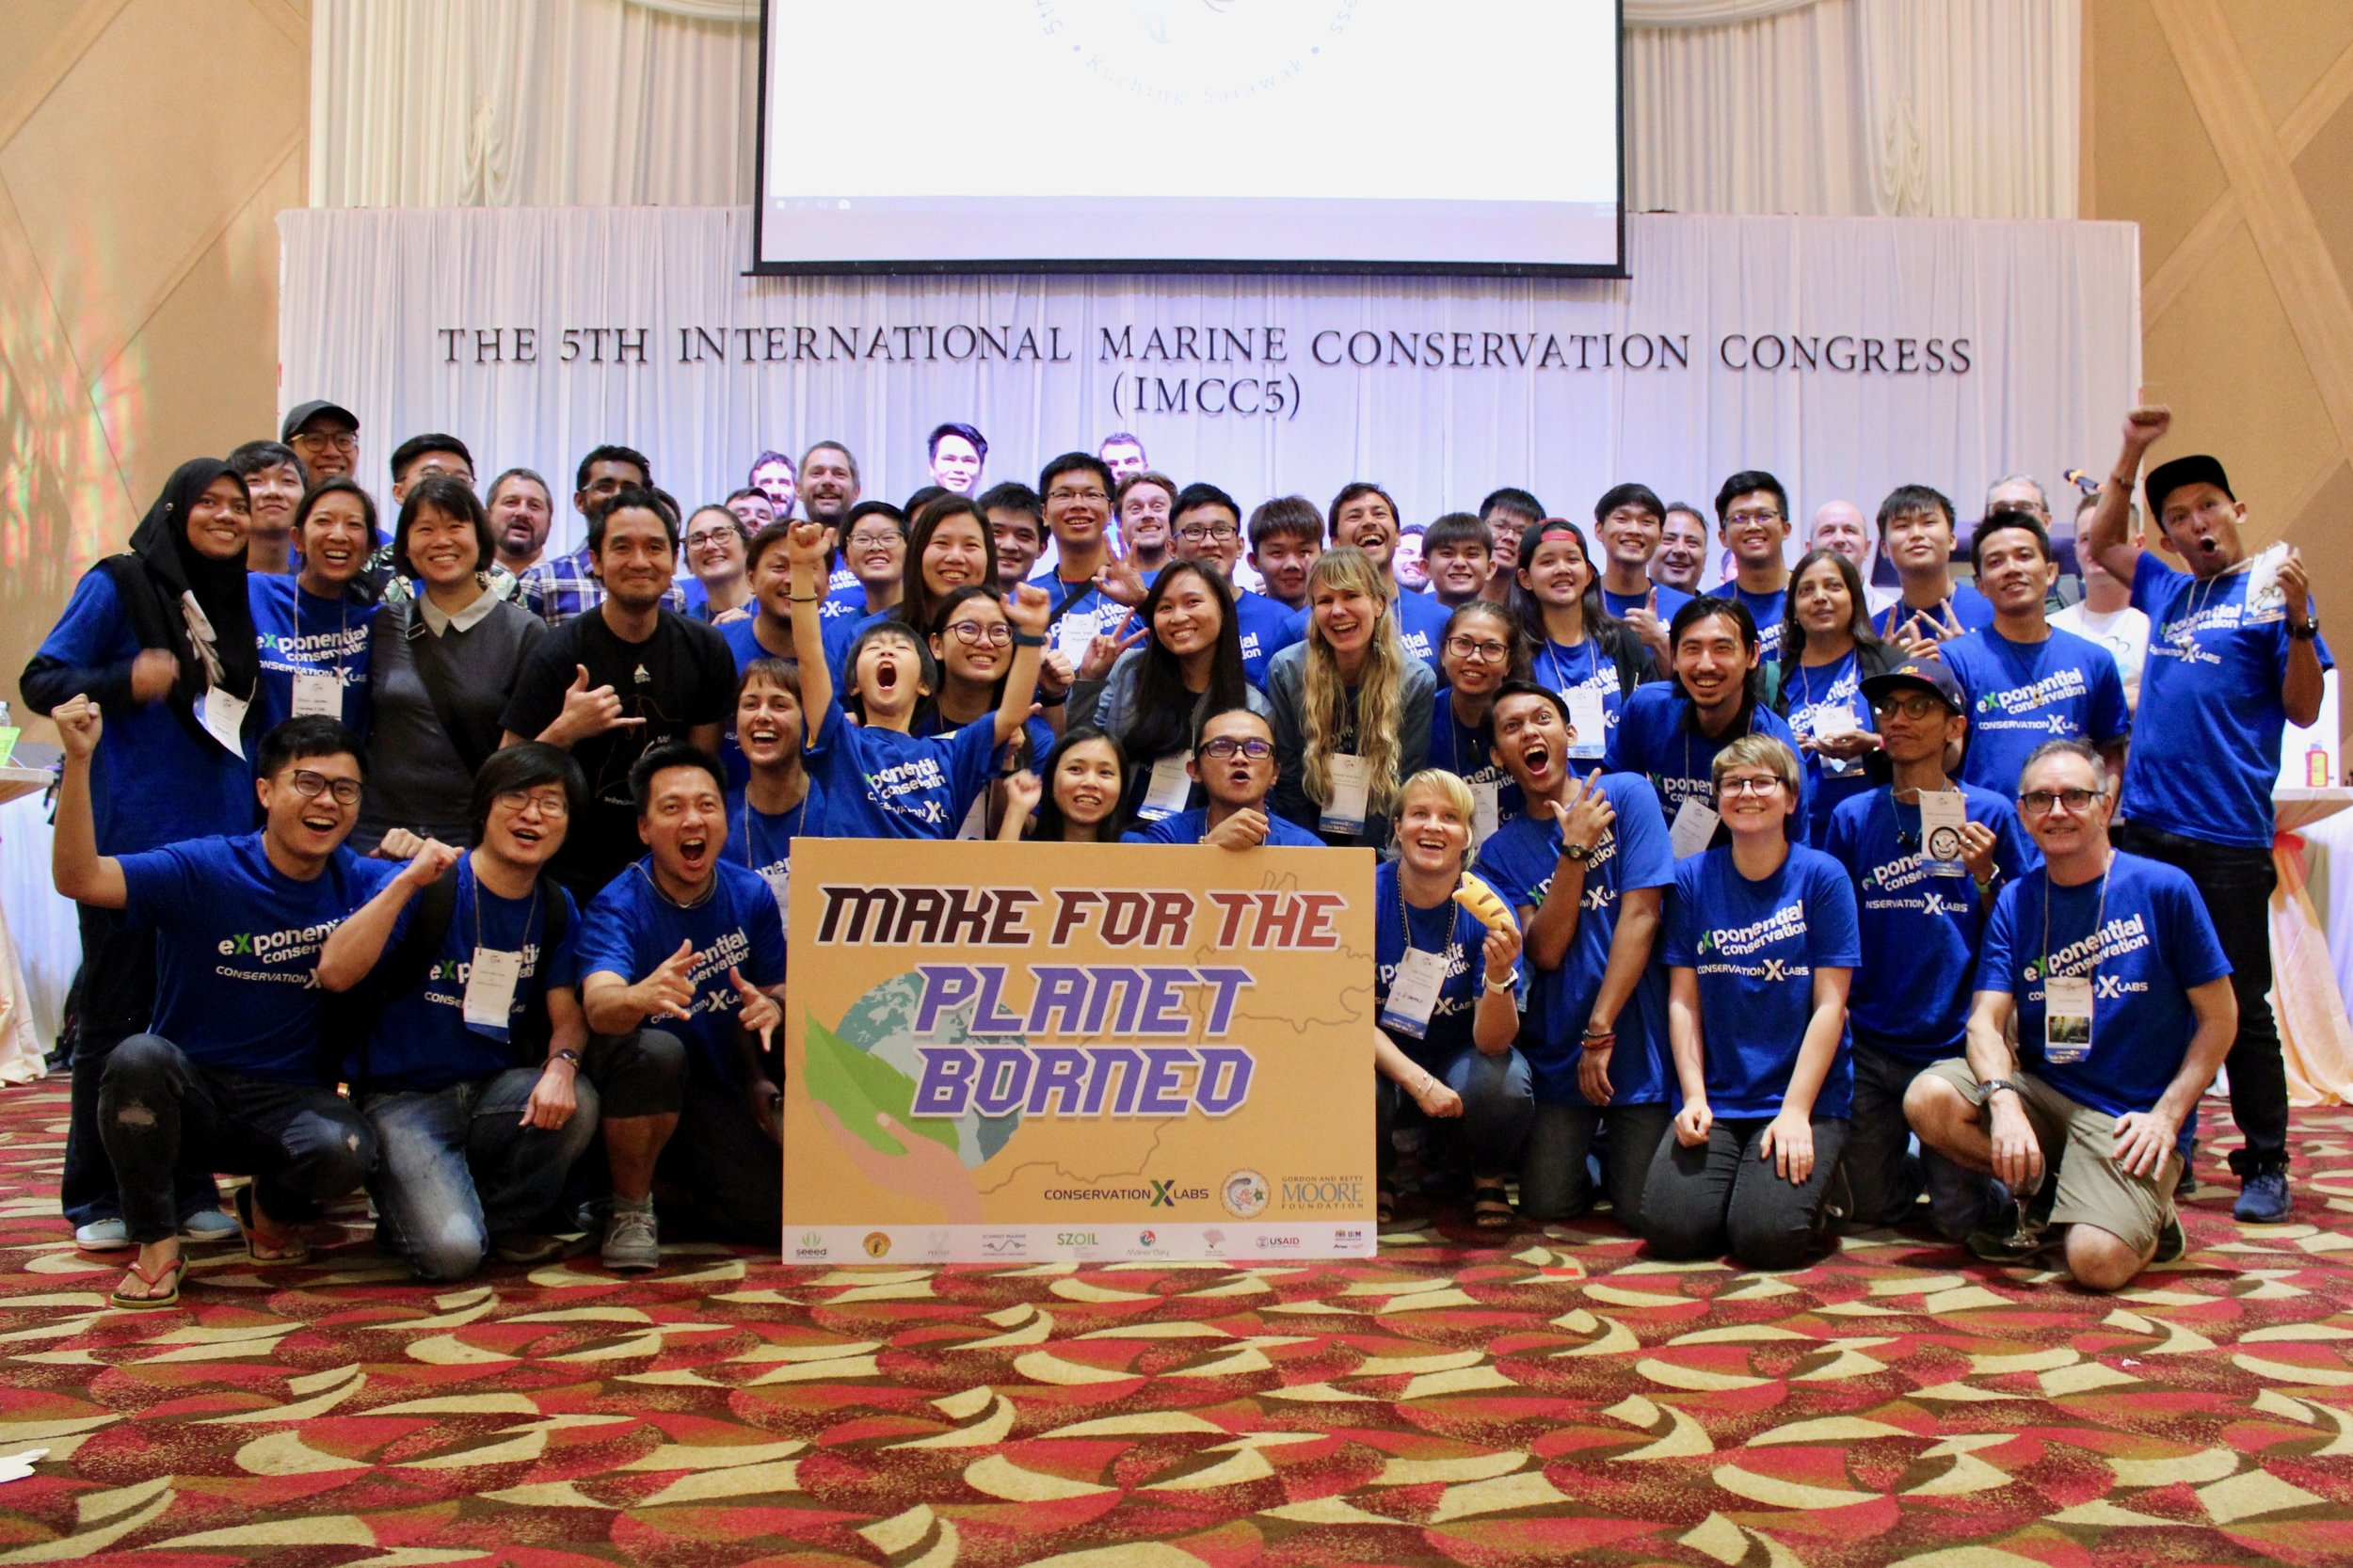 The Make for the Planet Borneo participants celebrate a successful competition. 2018